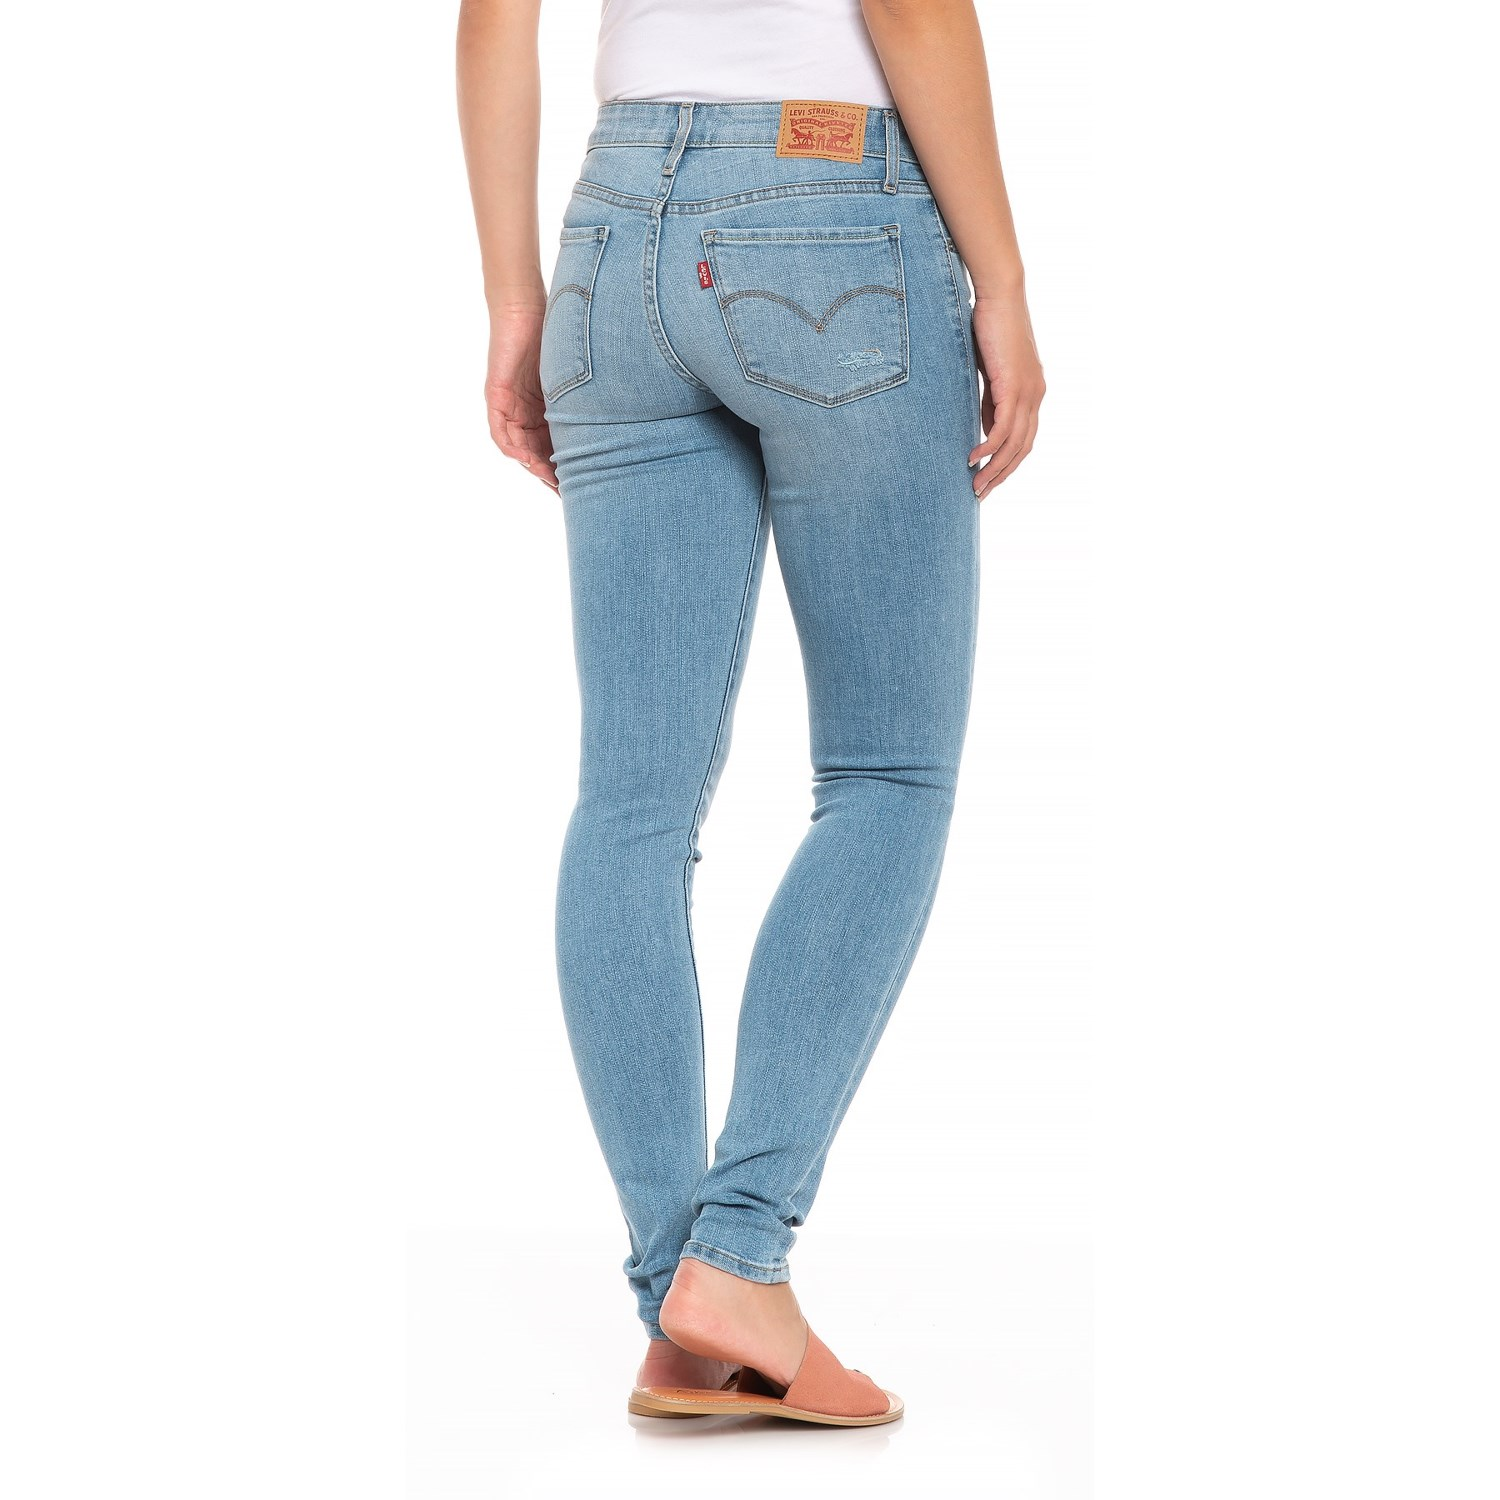 05ad1947072 Levi s Stereo Sound 711 Skinny Jeans (For Women) - Save 54%